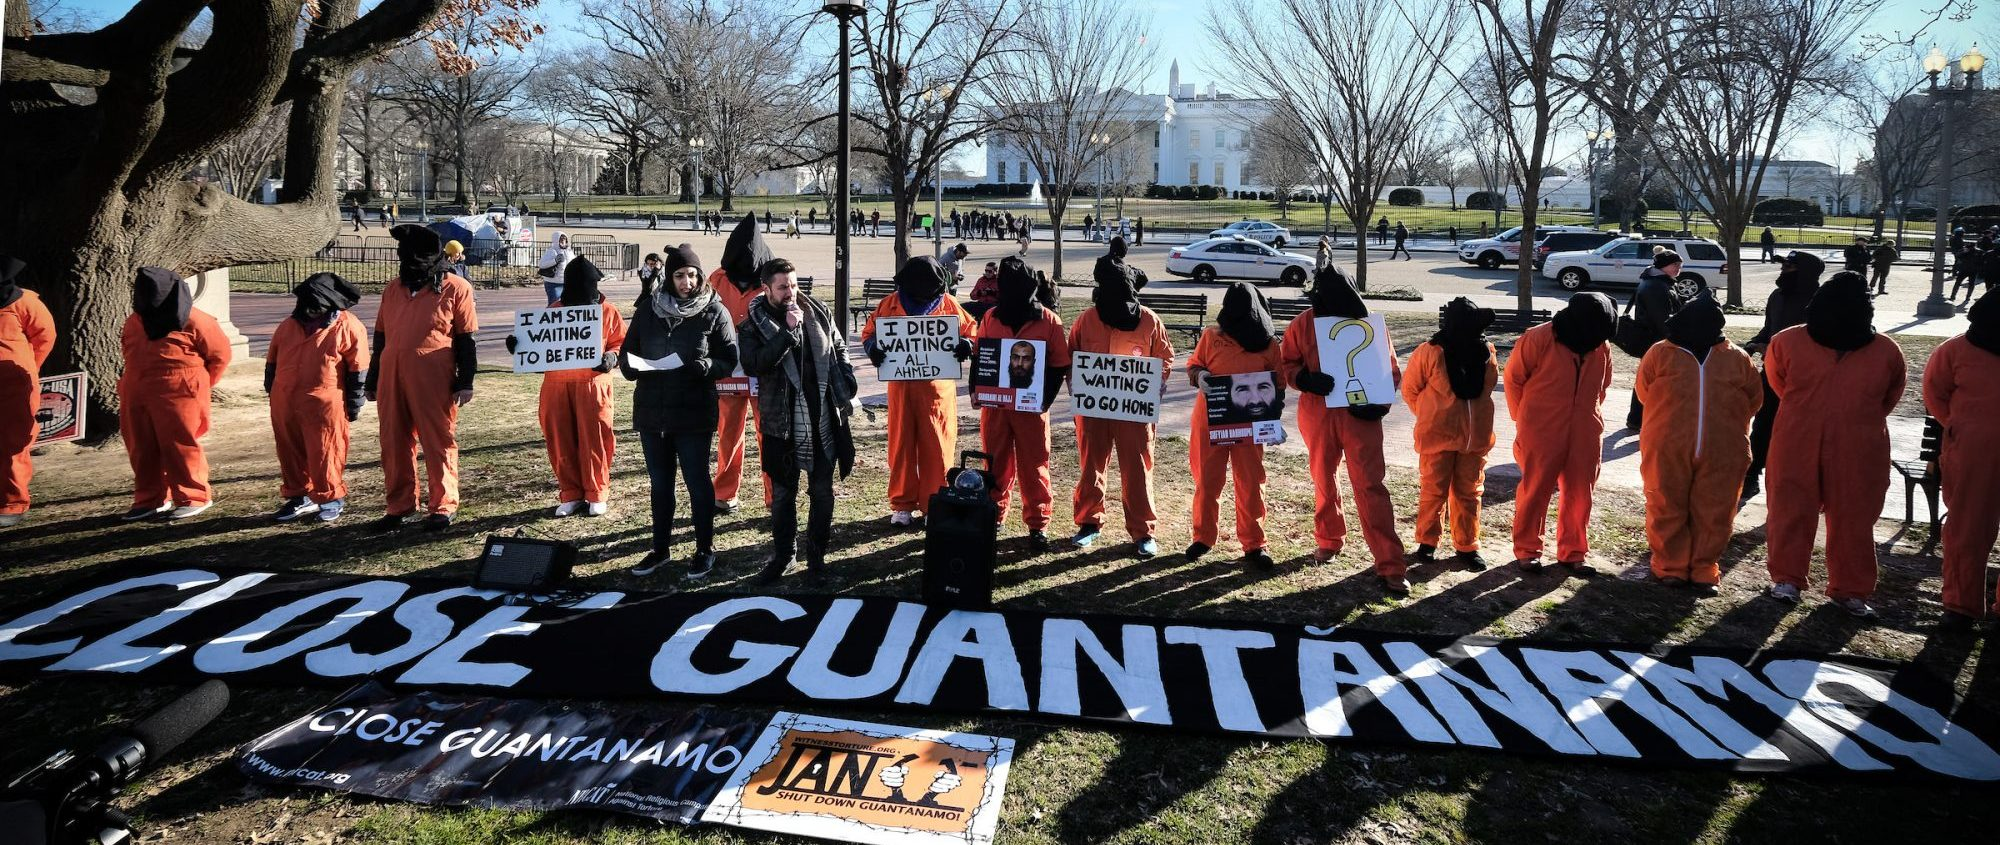 Fast For Justice To Close Guantanamo